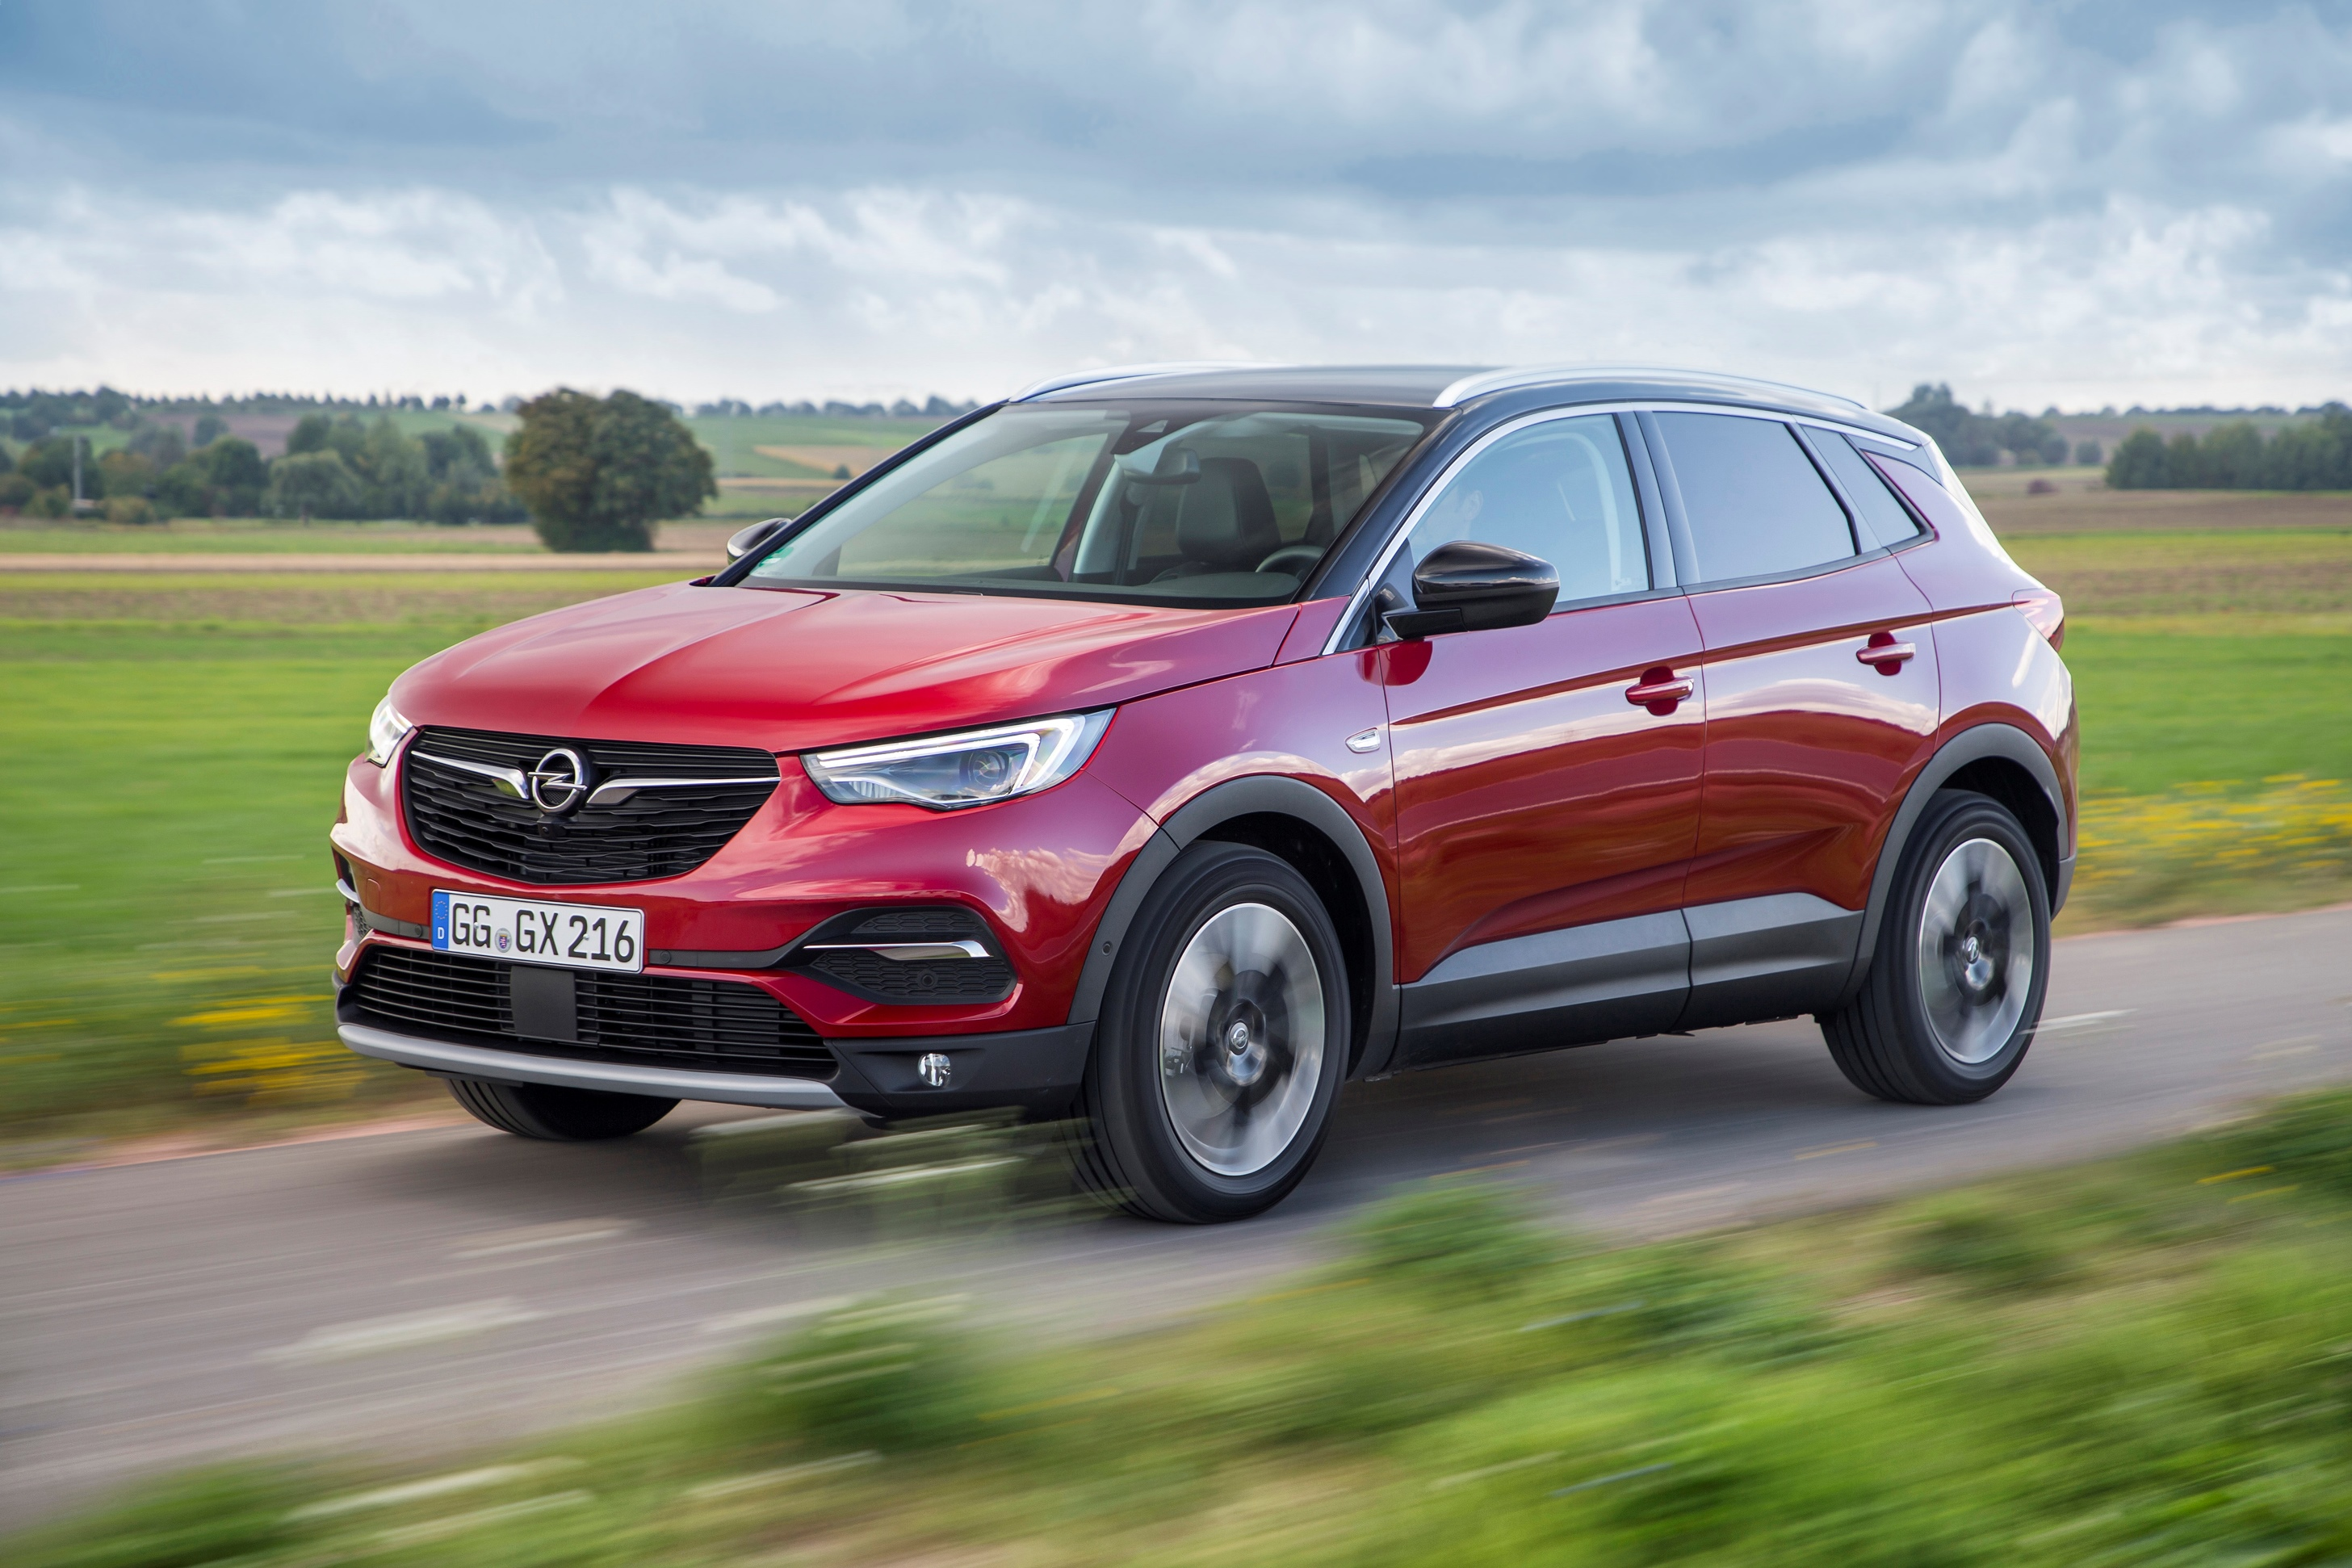 opel grandland x switching production to germany in 2019 phev coming in 2020 autoevolution. Black Bedroom Furniture Sets. Home Design Ideas